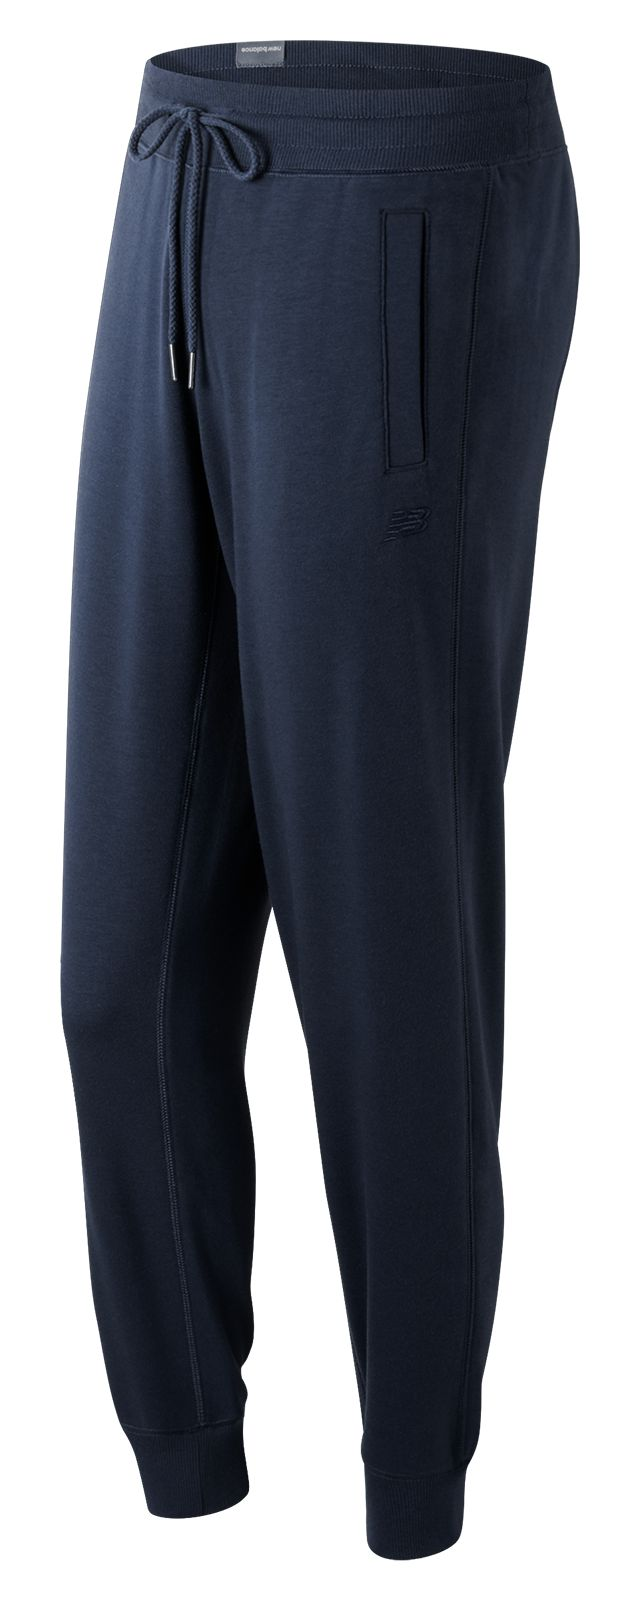 Women's Classic Tailored Sweatpant